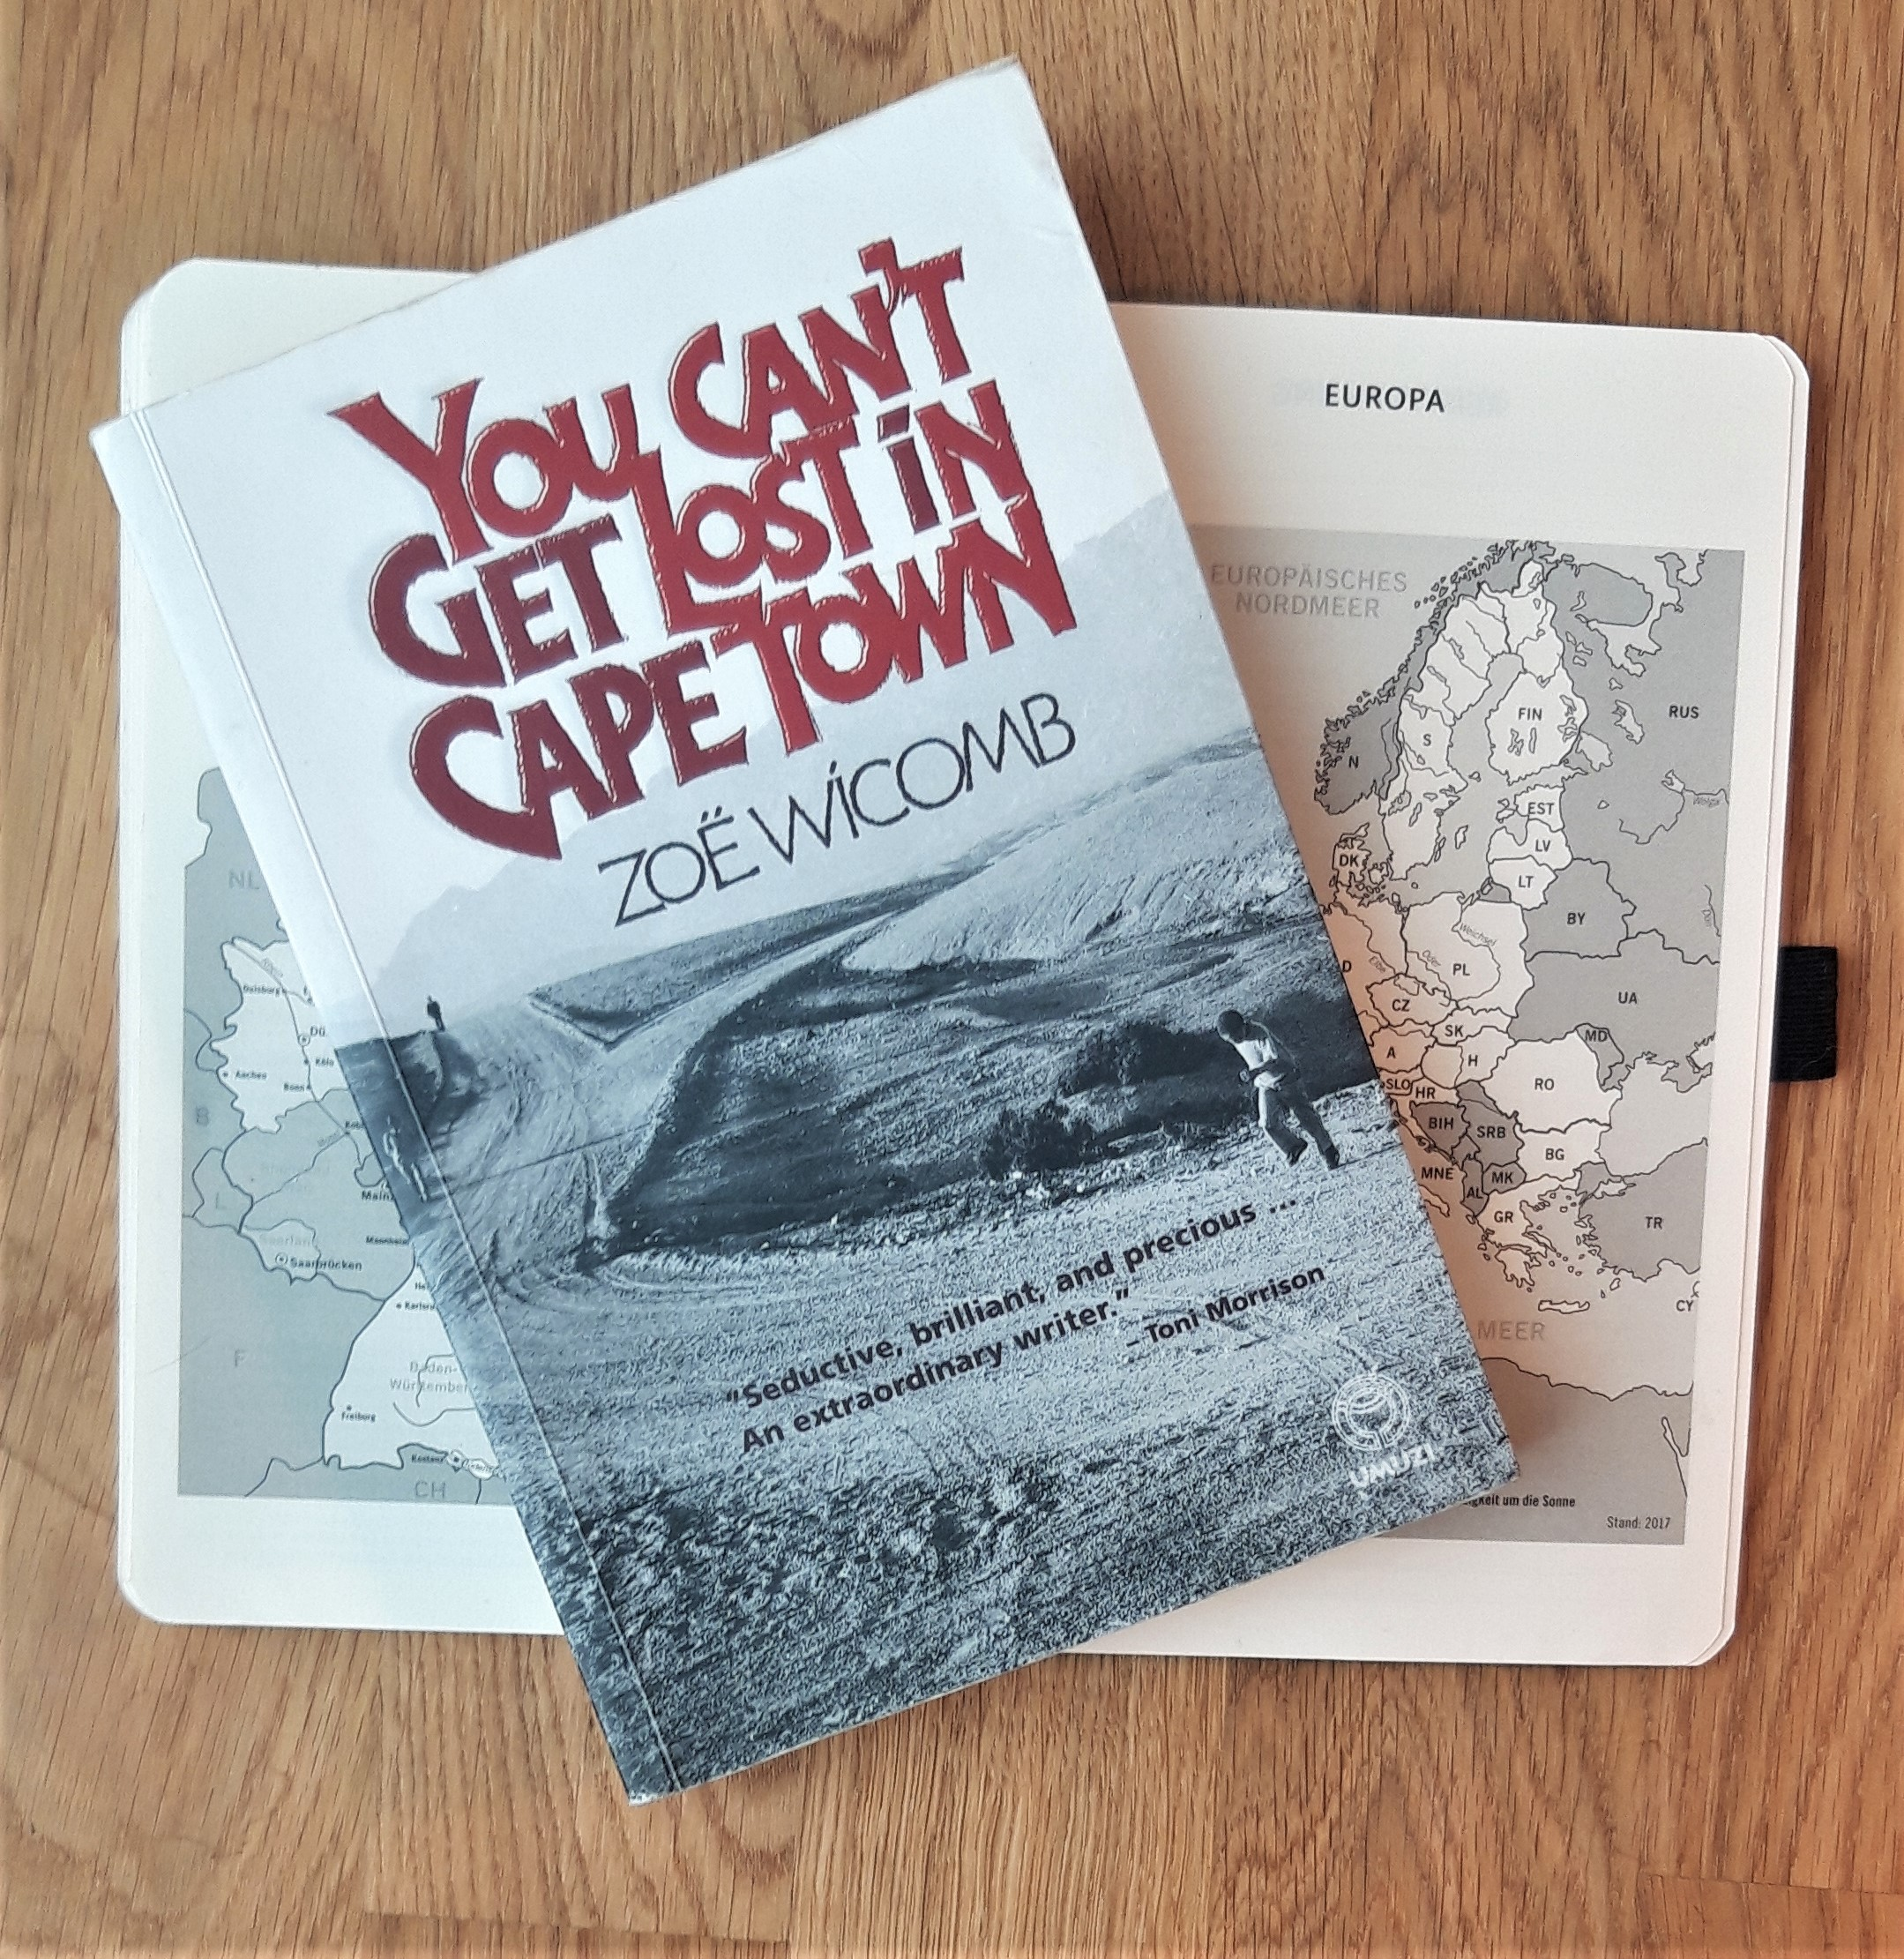 Postcolonial literatures and Eurocentrism: Zoe Wicomb's You can't get lost in Cape Town